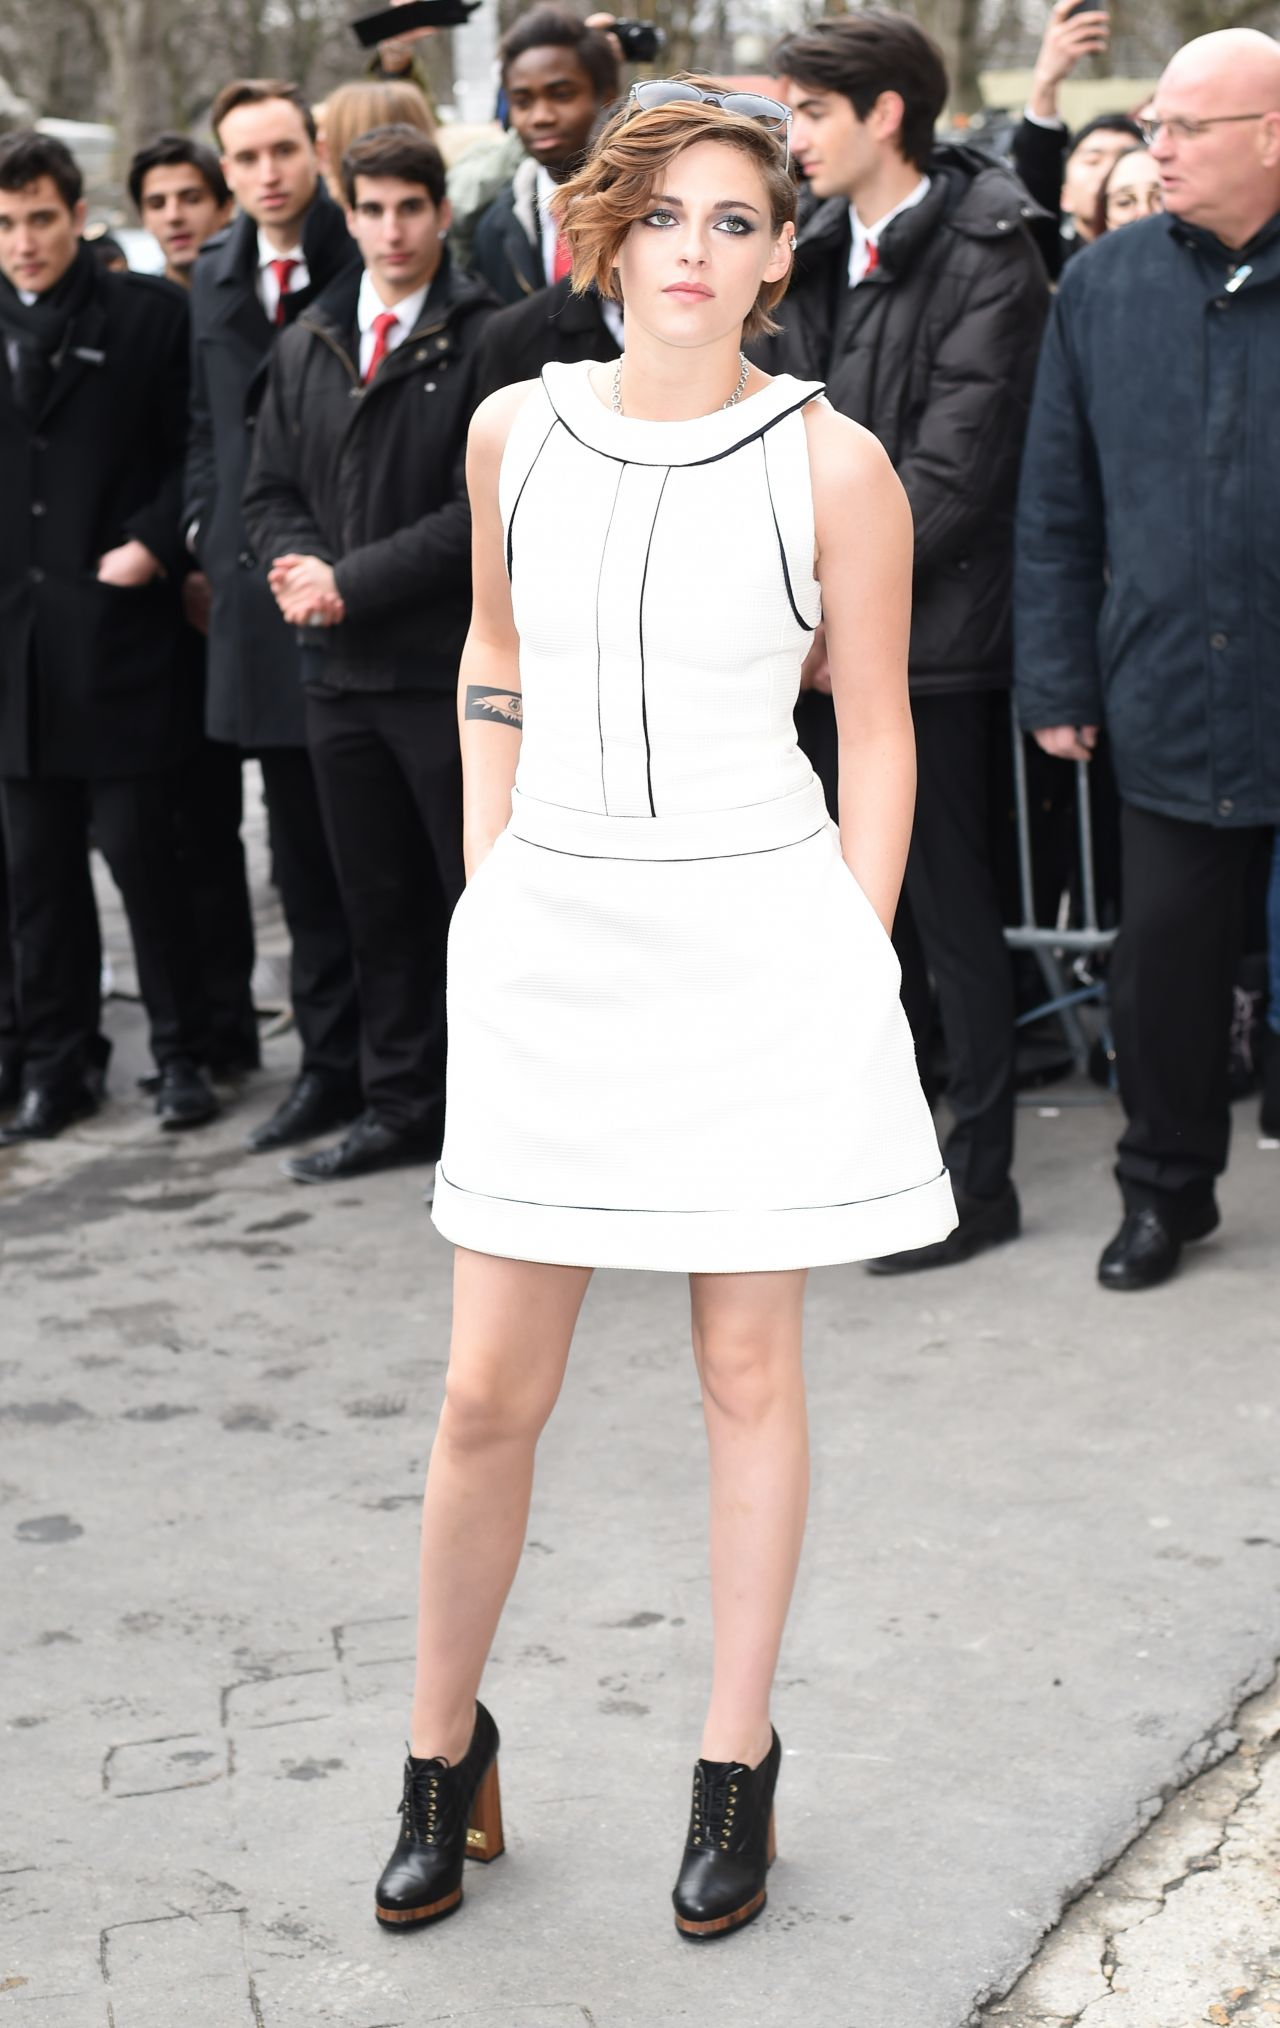 Kristen Stewart Chanel Spring Summer 2015 Fashion Show In Paris